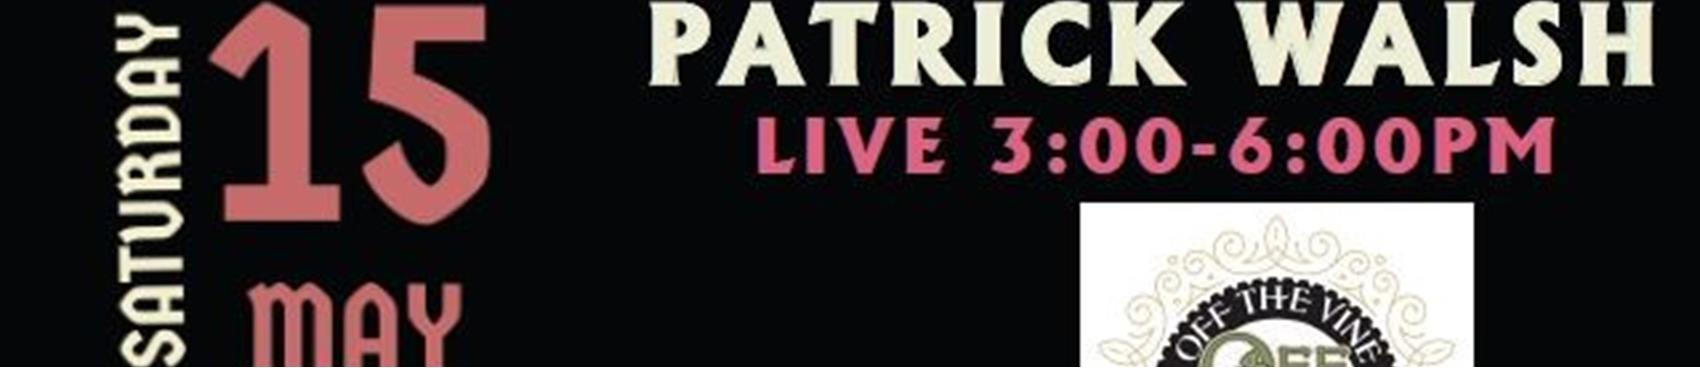 Food, Wine & Live Music by Patrick Walsh